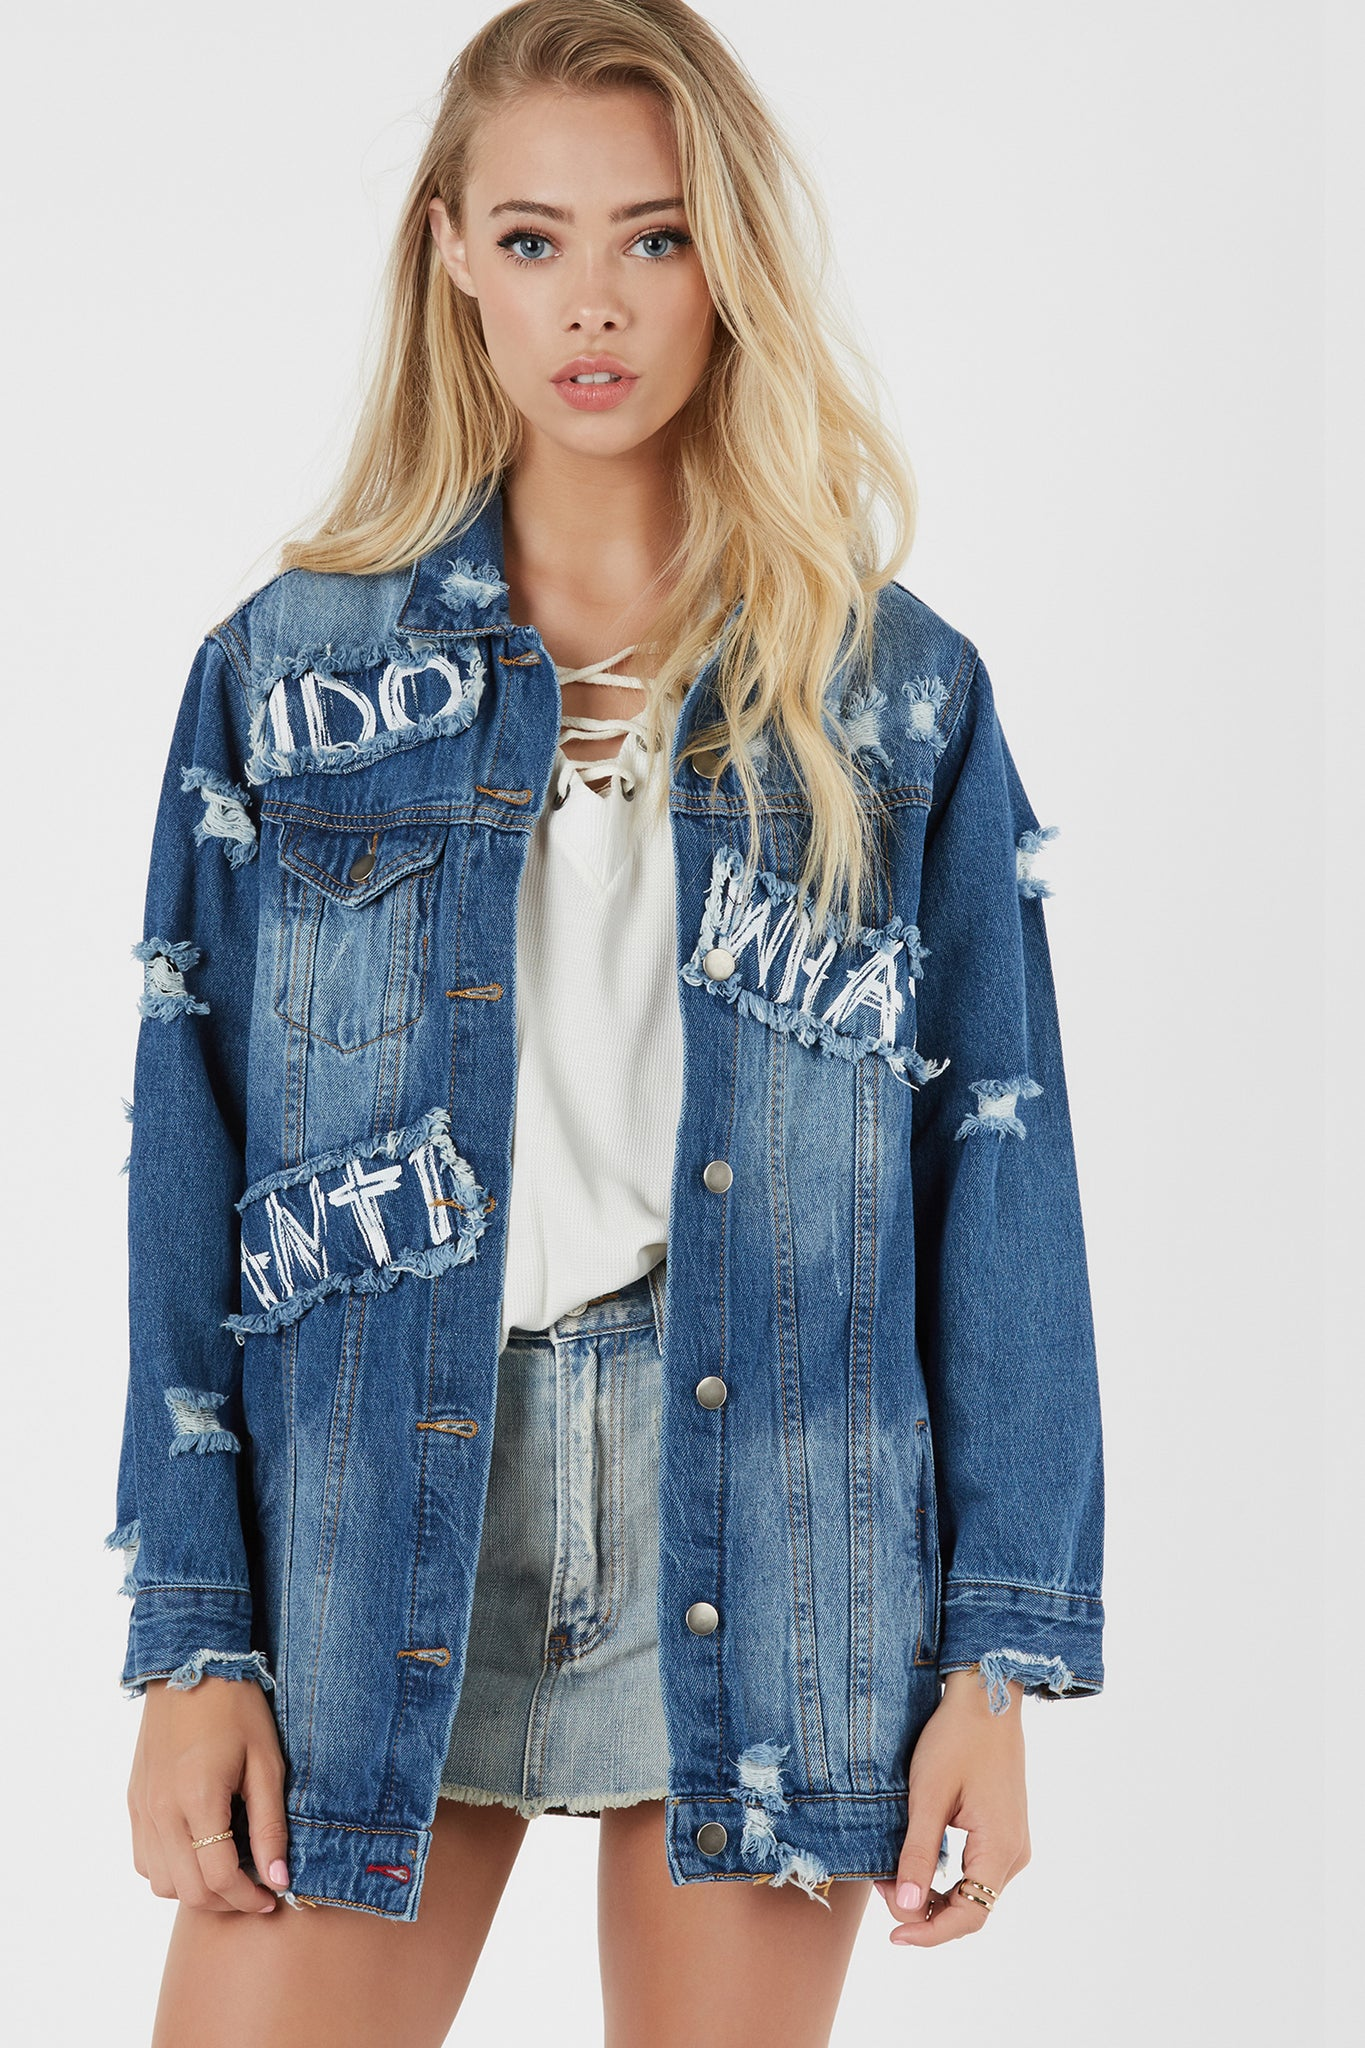 Trendy oversied denim jacket with distressing throughout. Graphic print with longline hem finish.